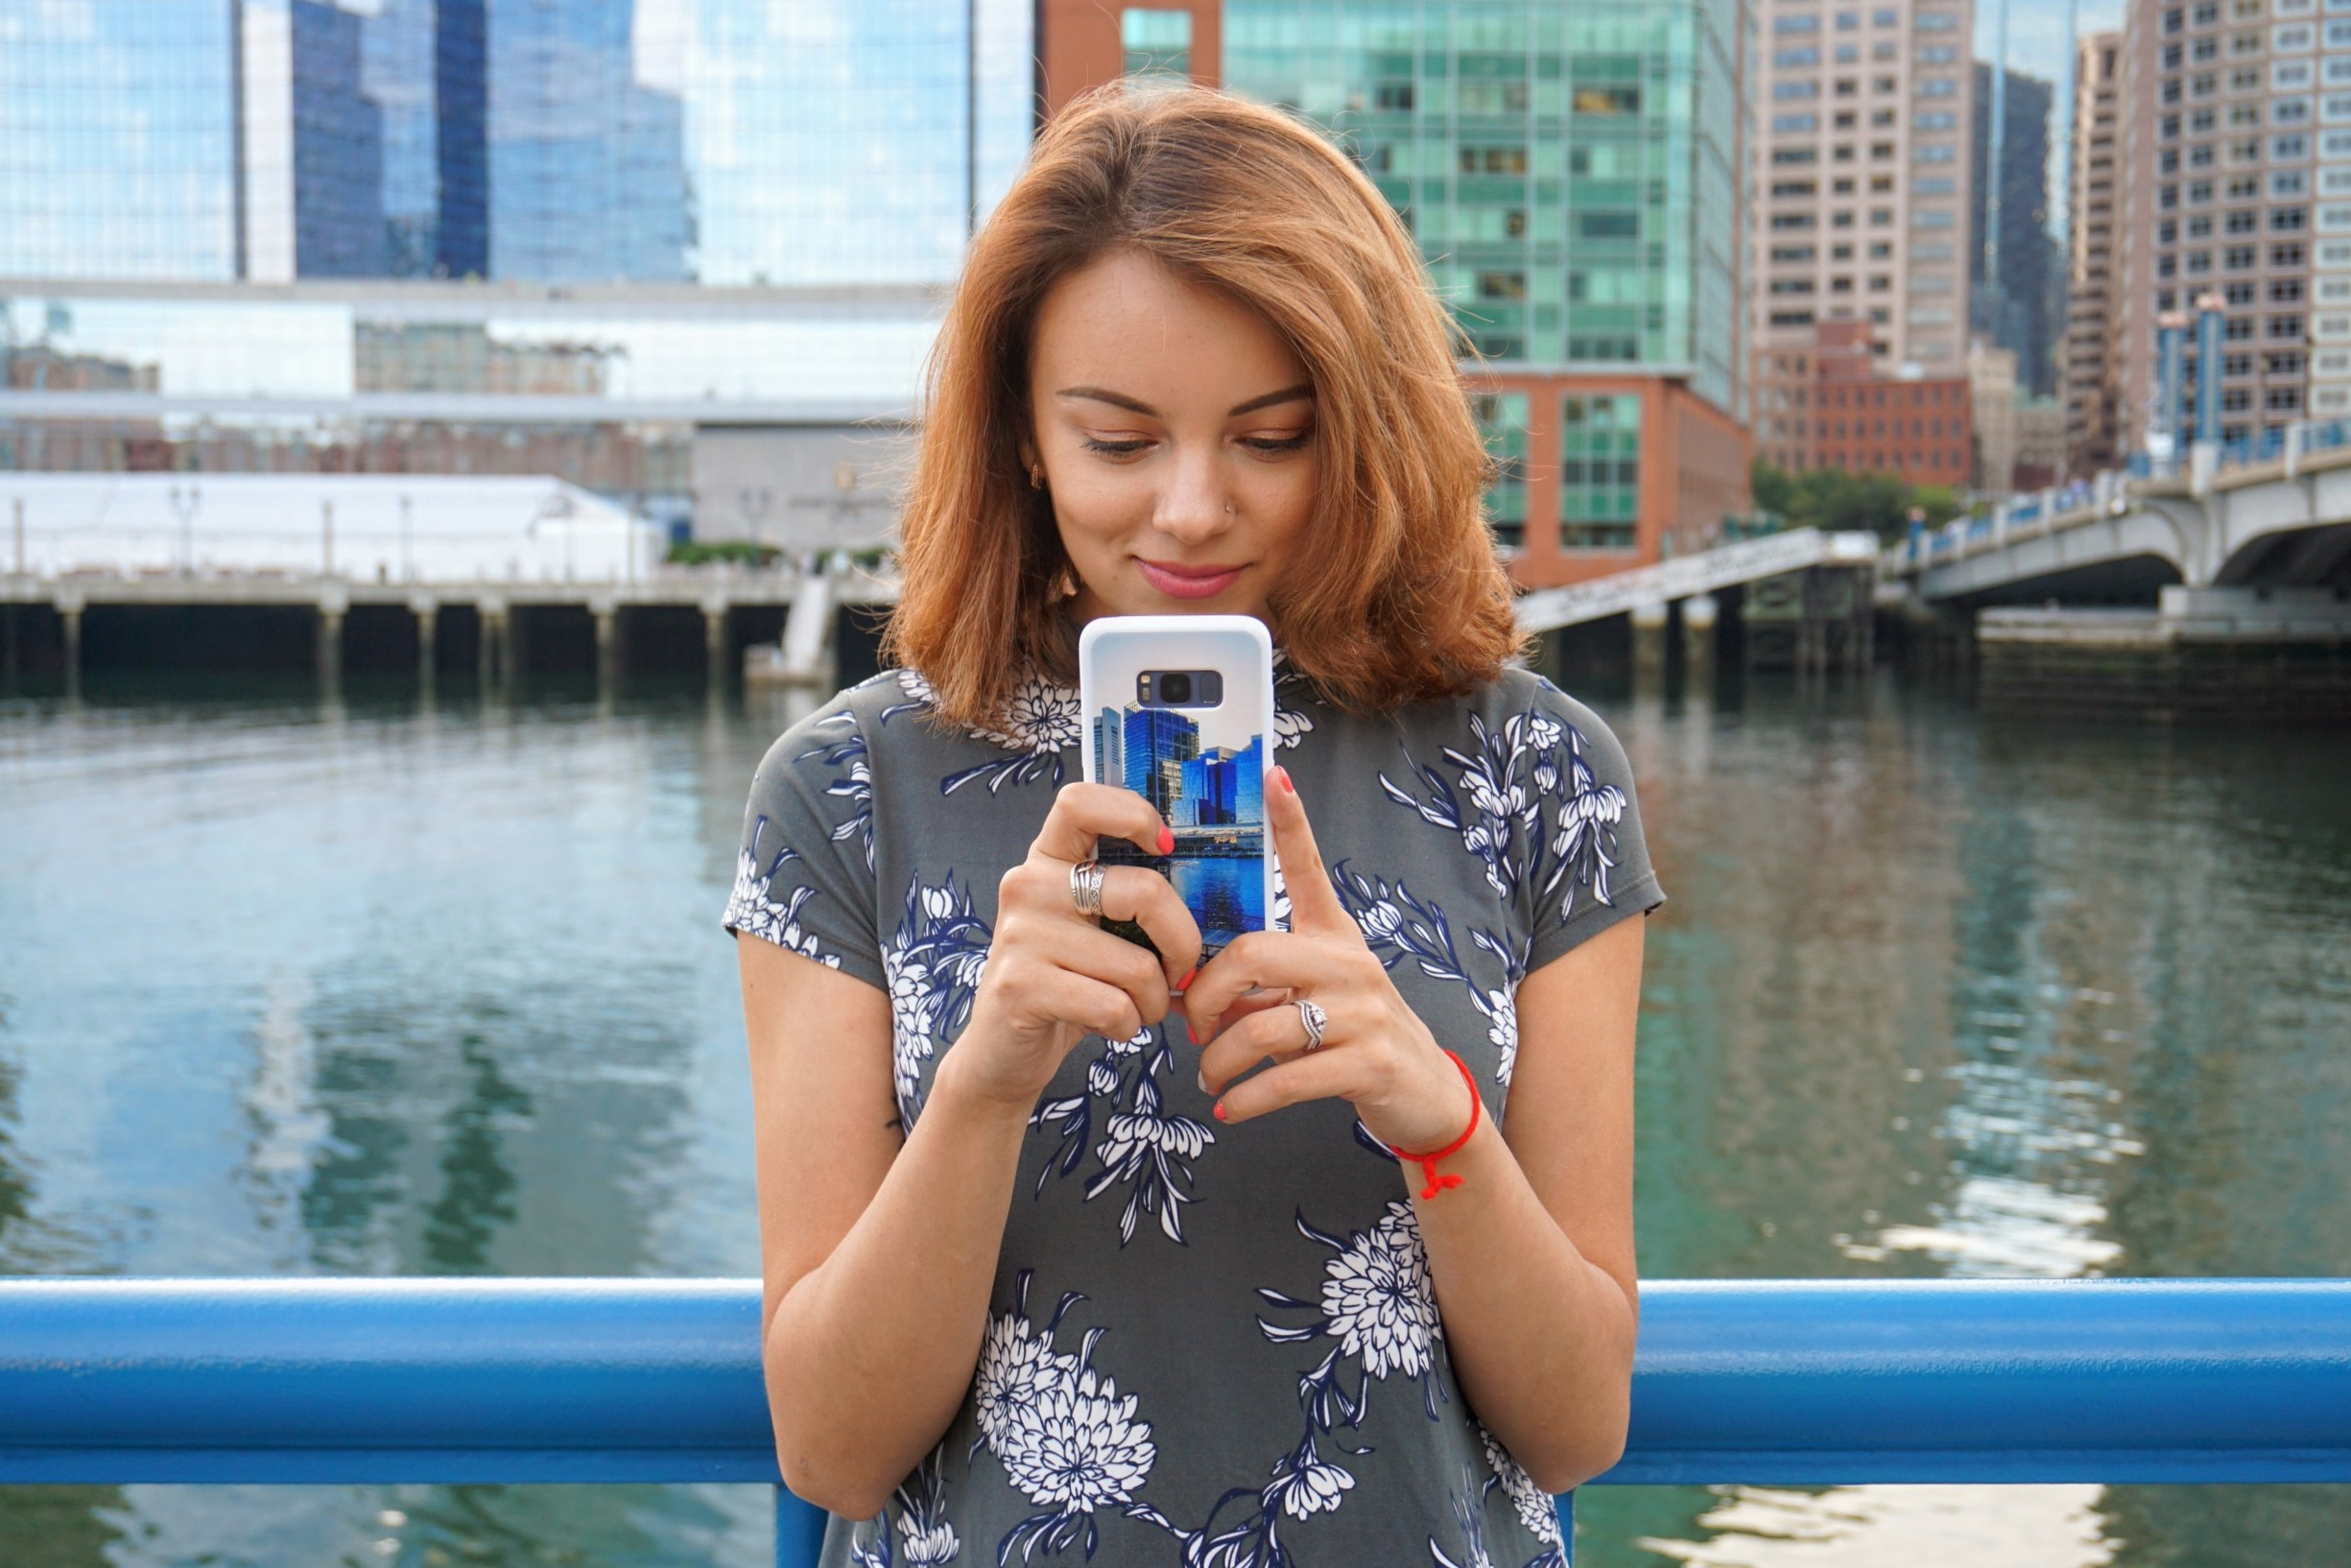 A blogger taking a photo with a samsung s8.